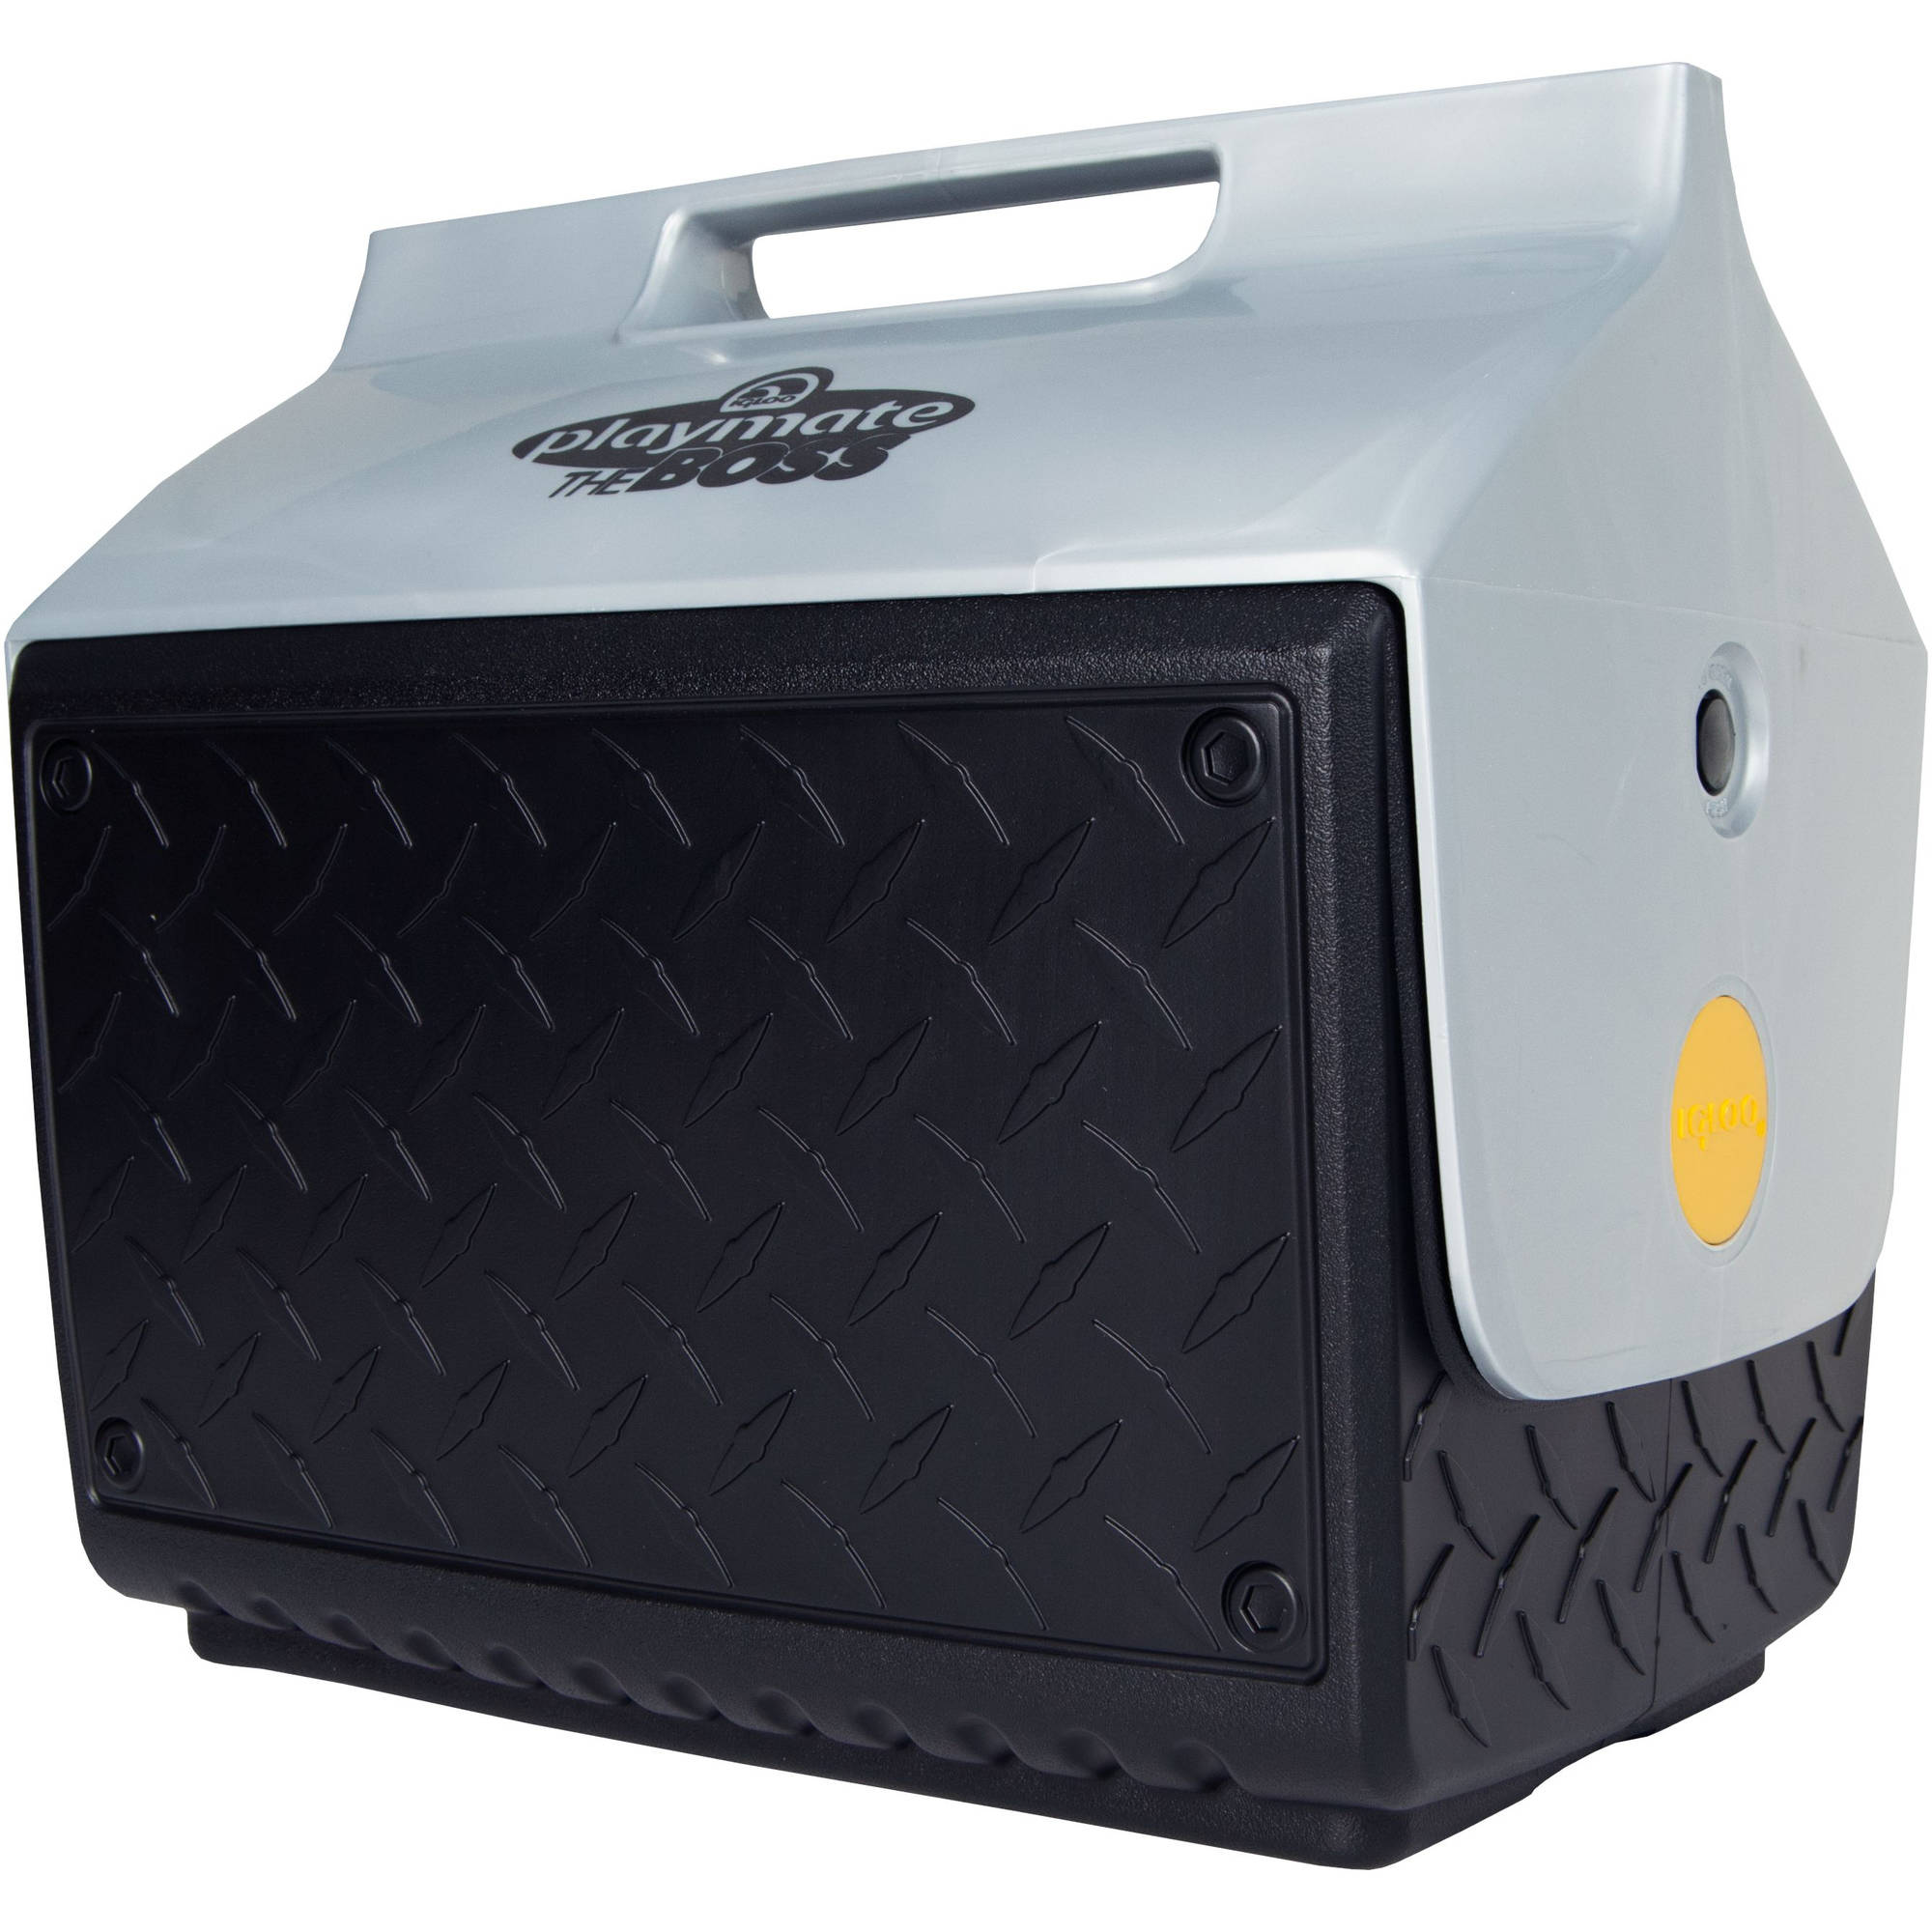 Igloo Playmate Cooler, the Boss